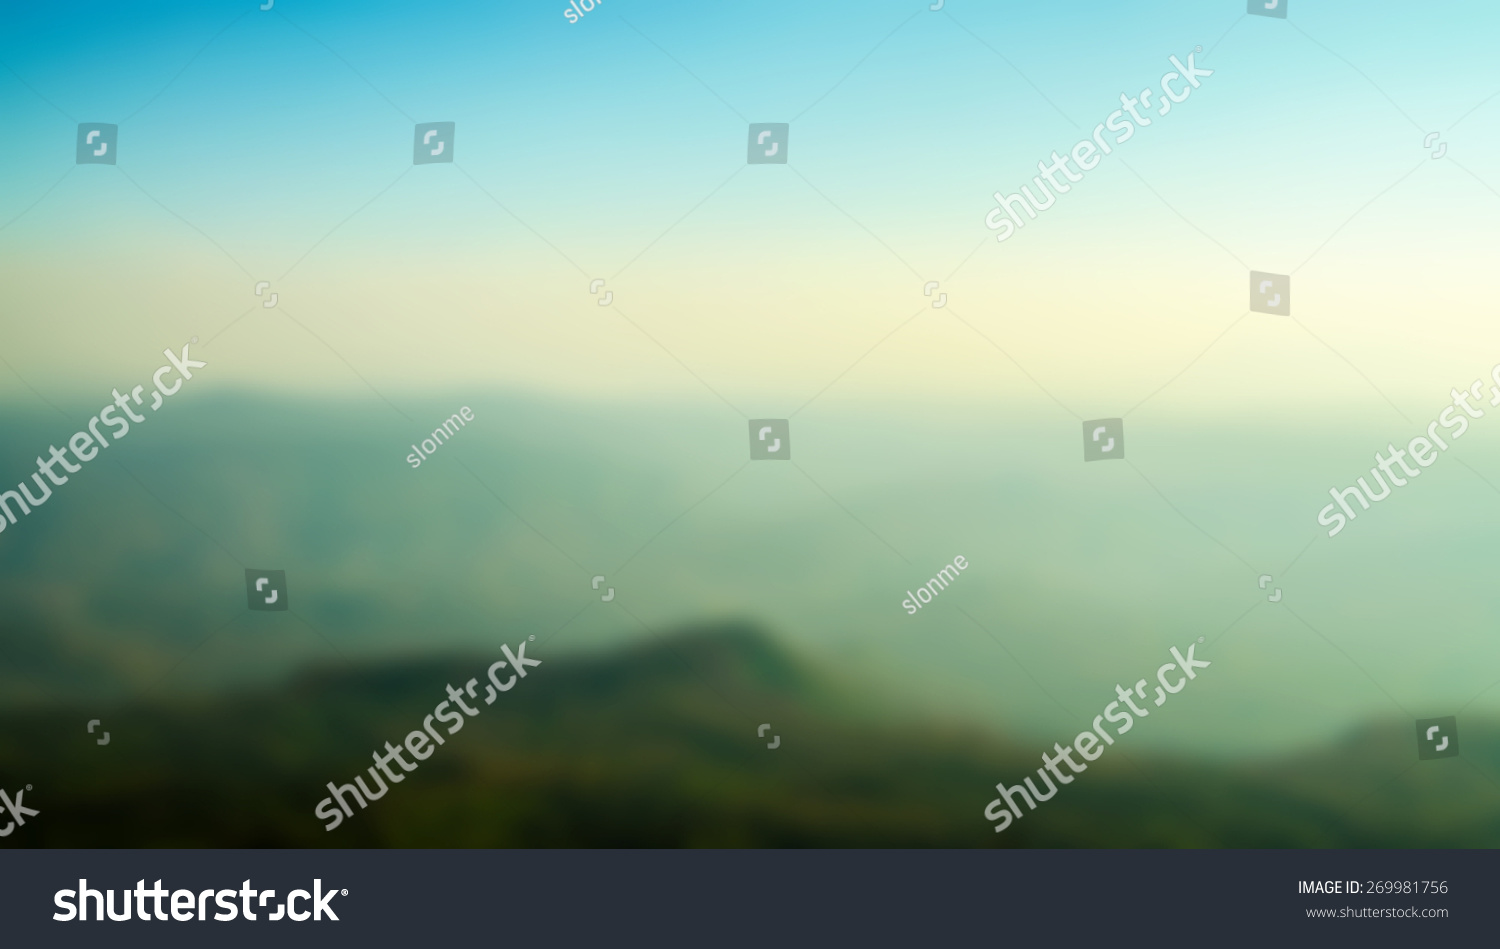 Most Inspiring Wallpaper Mountain Blurry - stock-photo-blurred-mountain-background-269981756  Pictures_73824.jpg